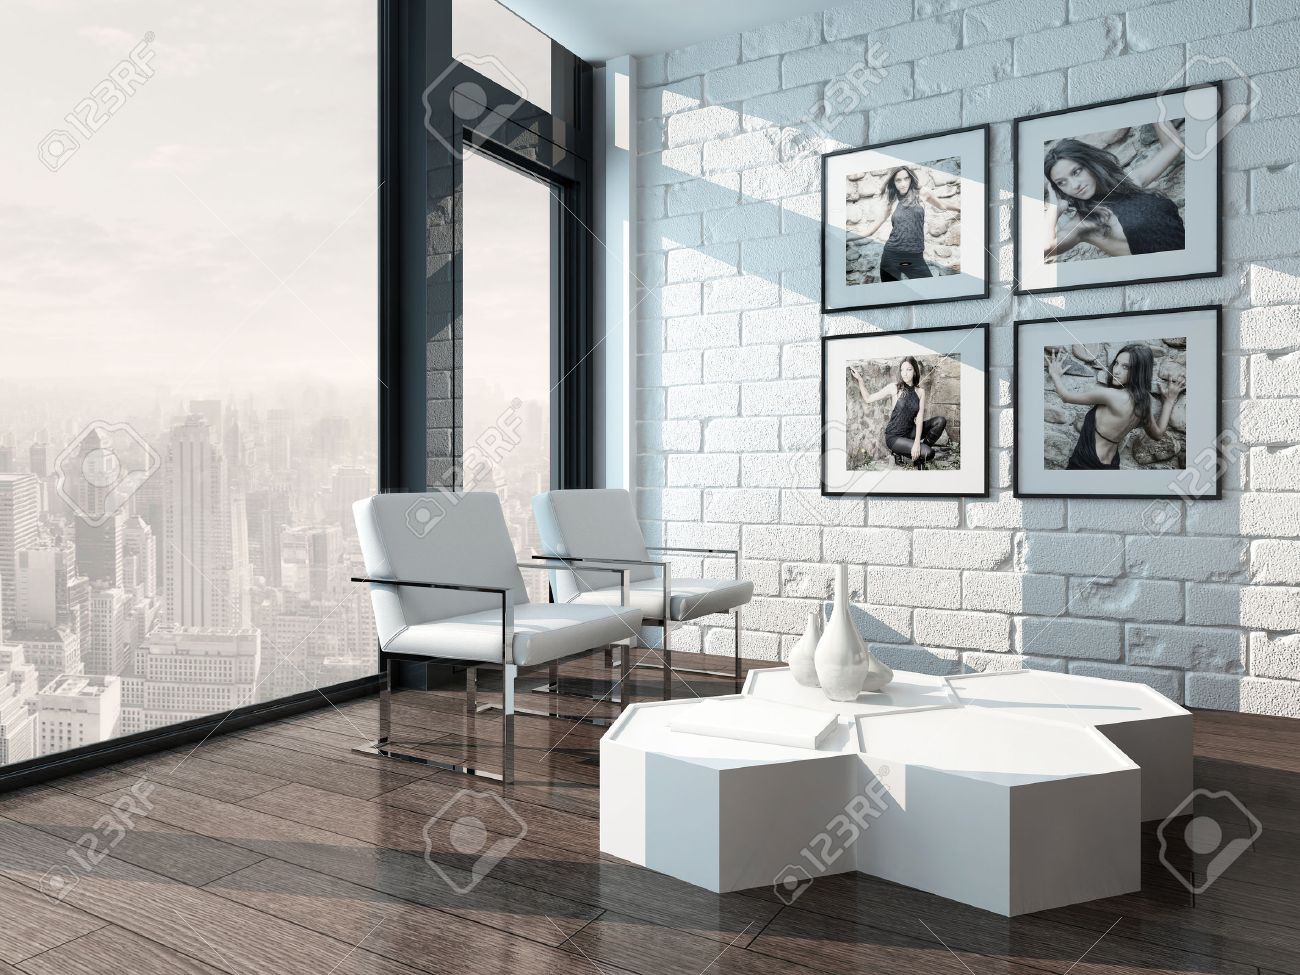 Minimalist Living Room Interior With White Brick Wall And Chairs Stock Photo